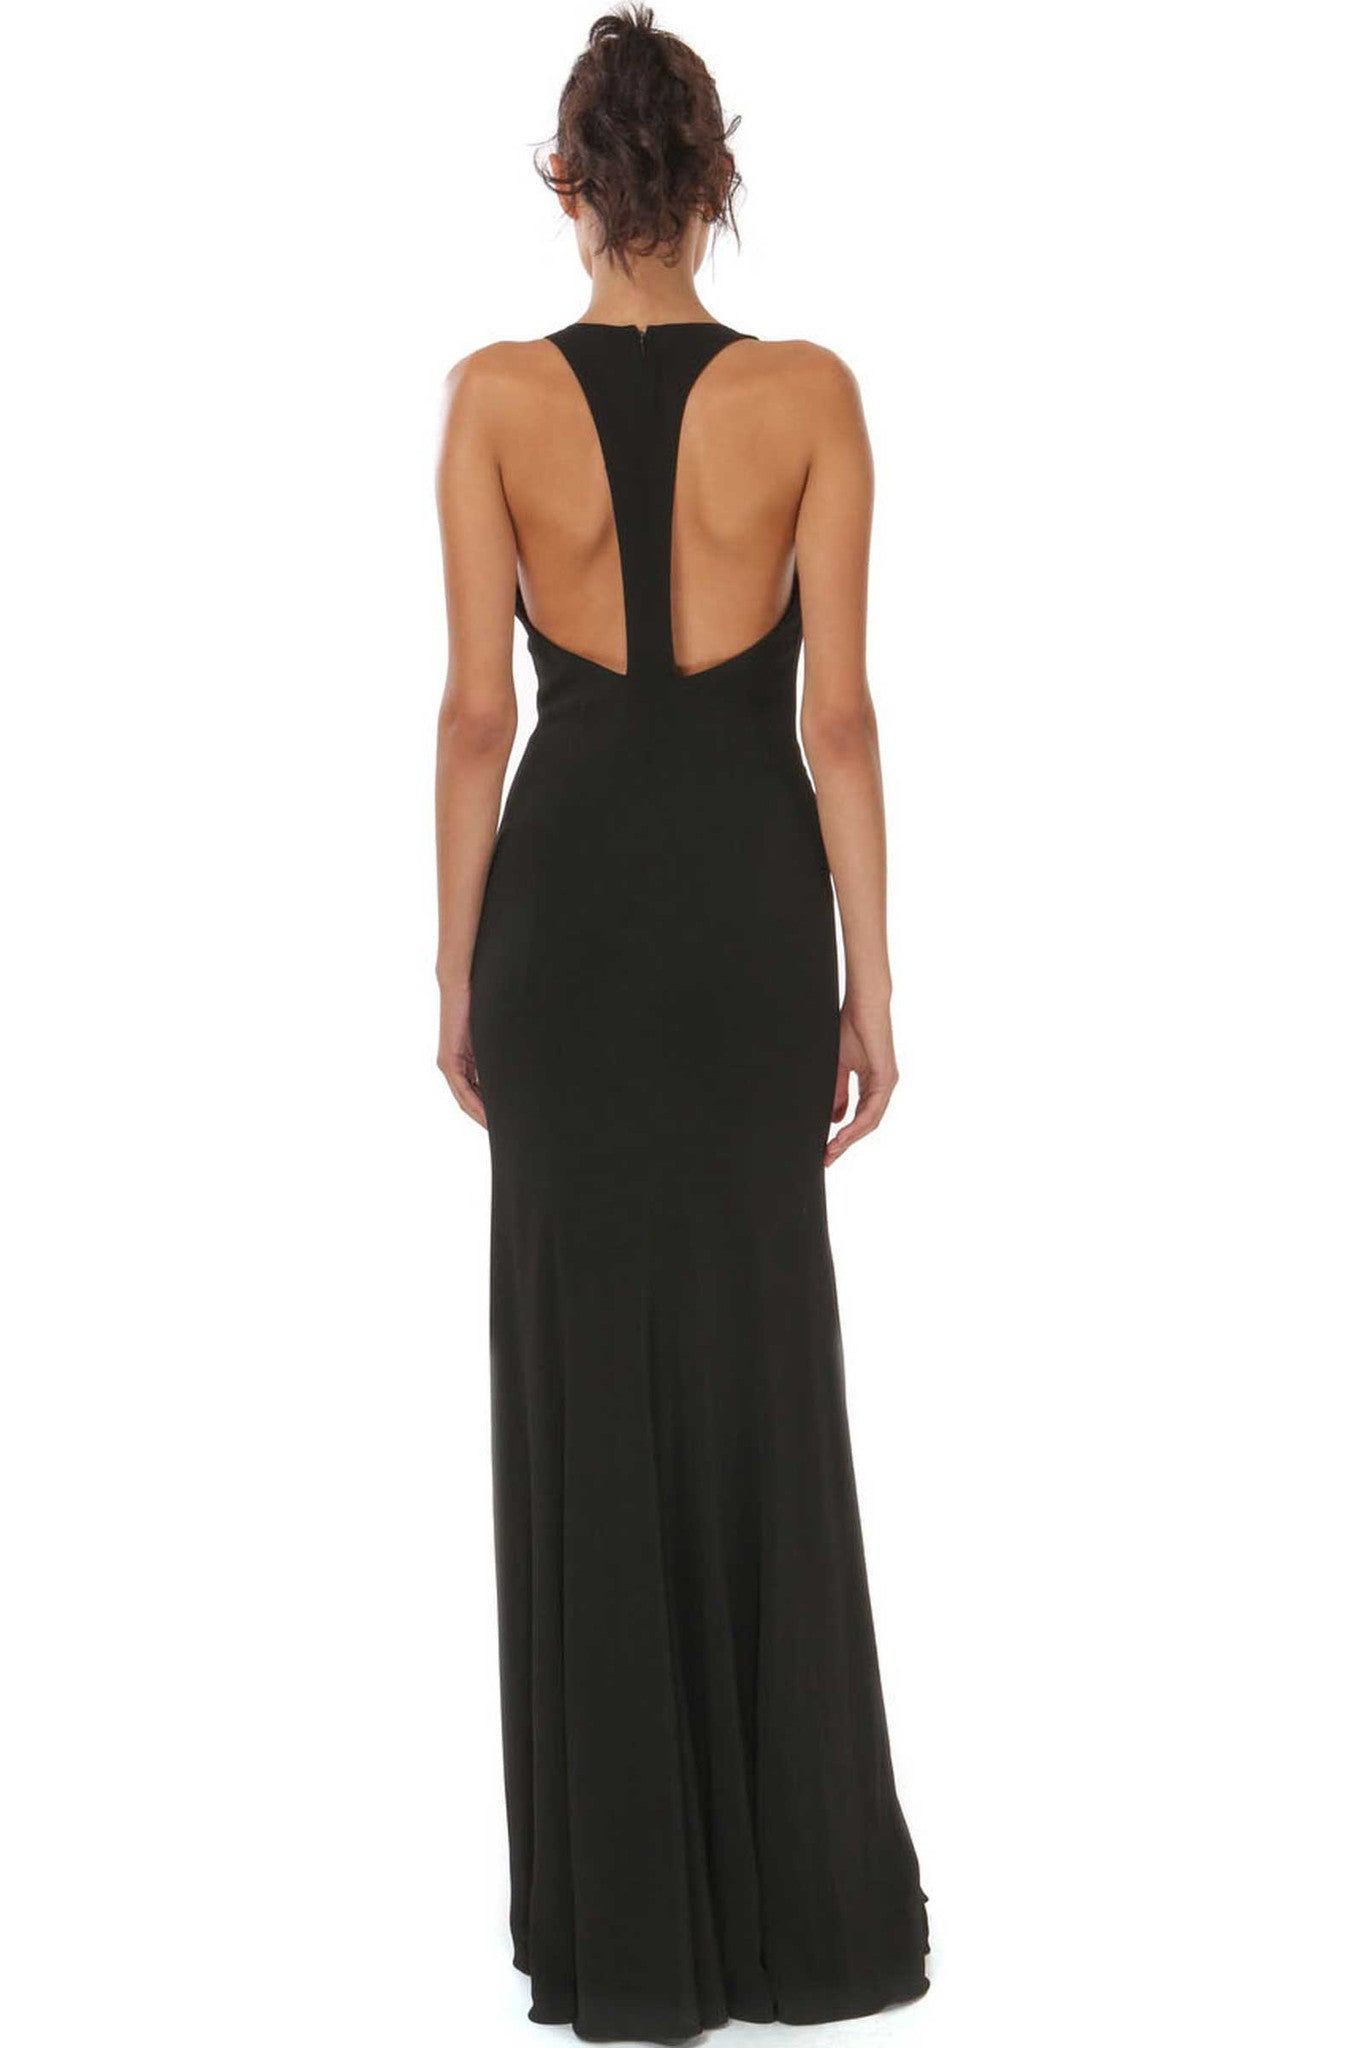 Jay Godfrey Deep V Neck Black Gown - Back View